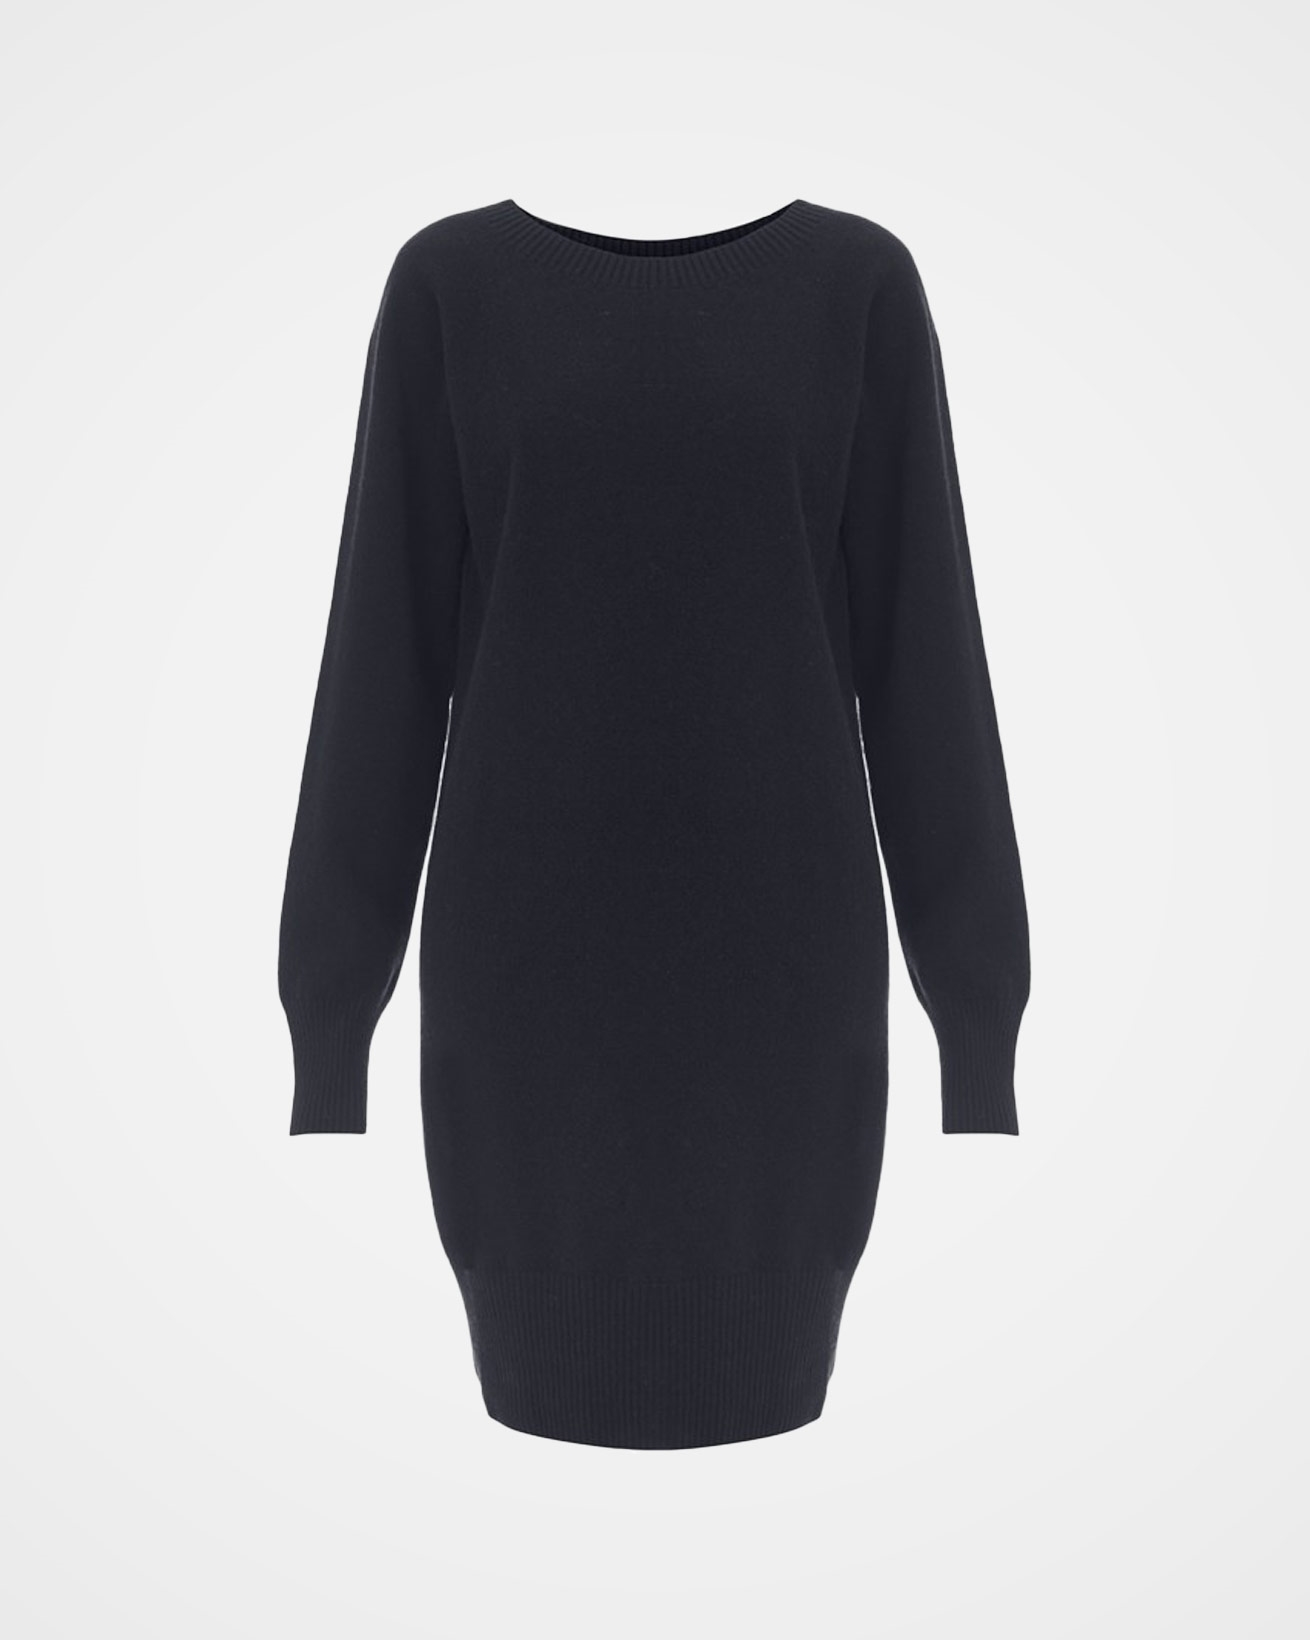 6170_supersoft-slouch-dress_dark-navy_front.jpg